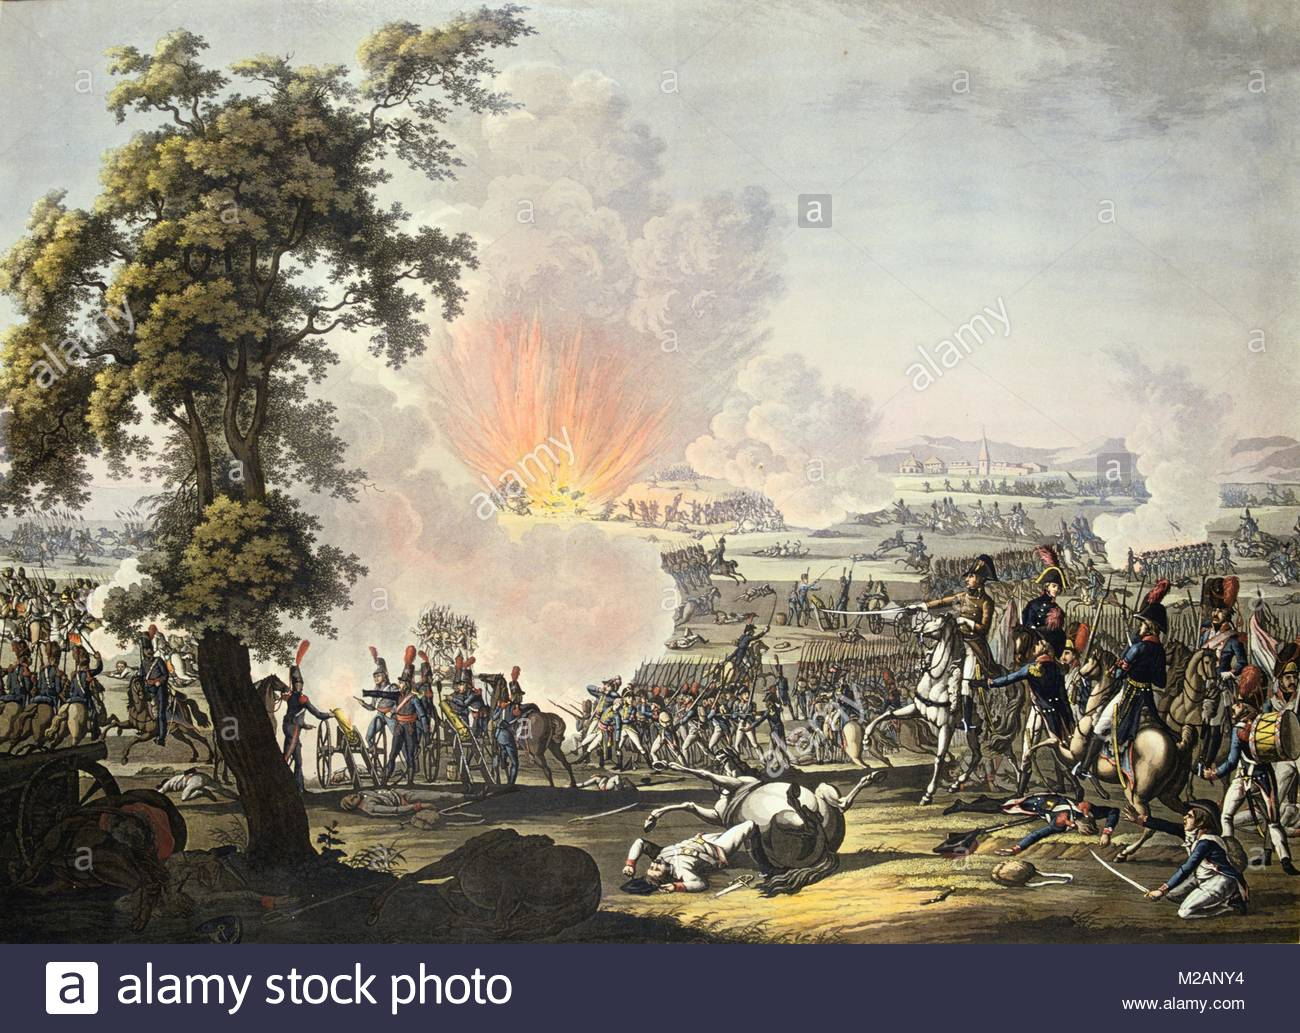 Napoleon at the Battle of Marengo, 14 June 1800 - Stock Image